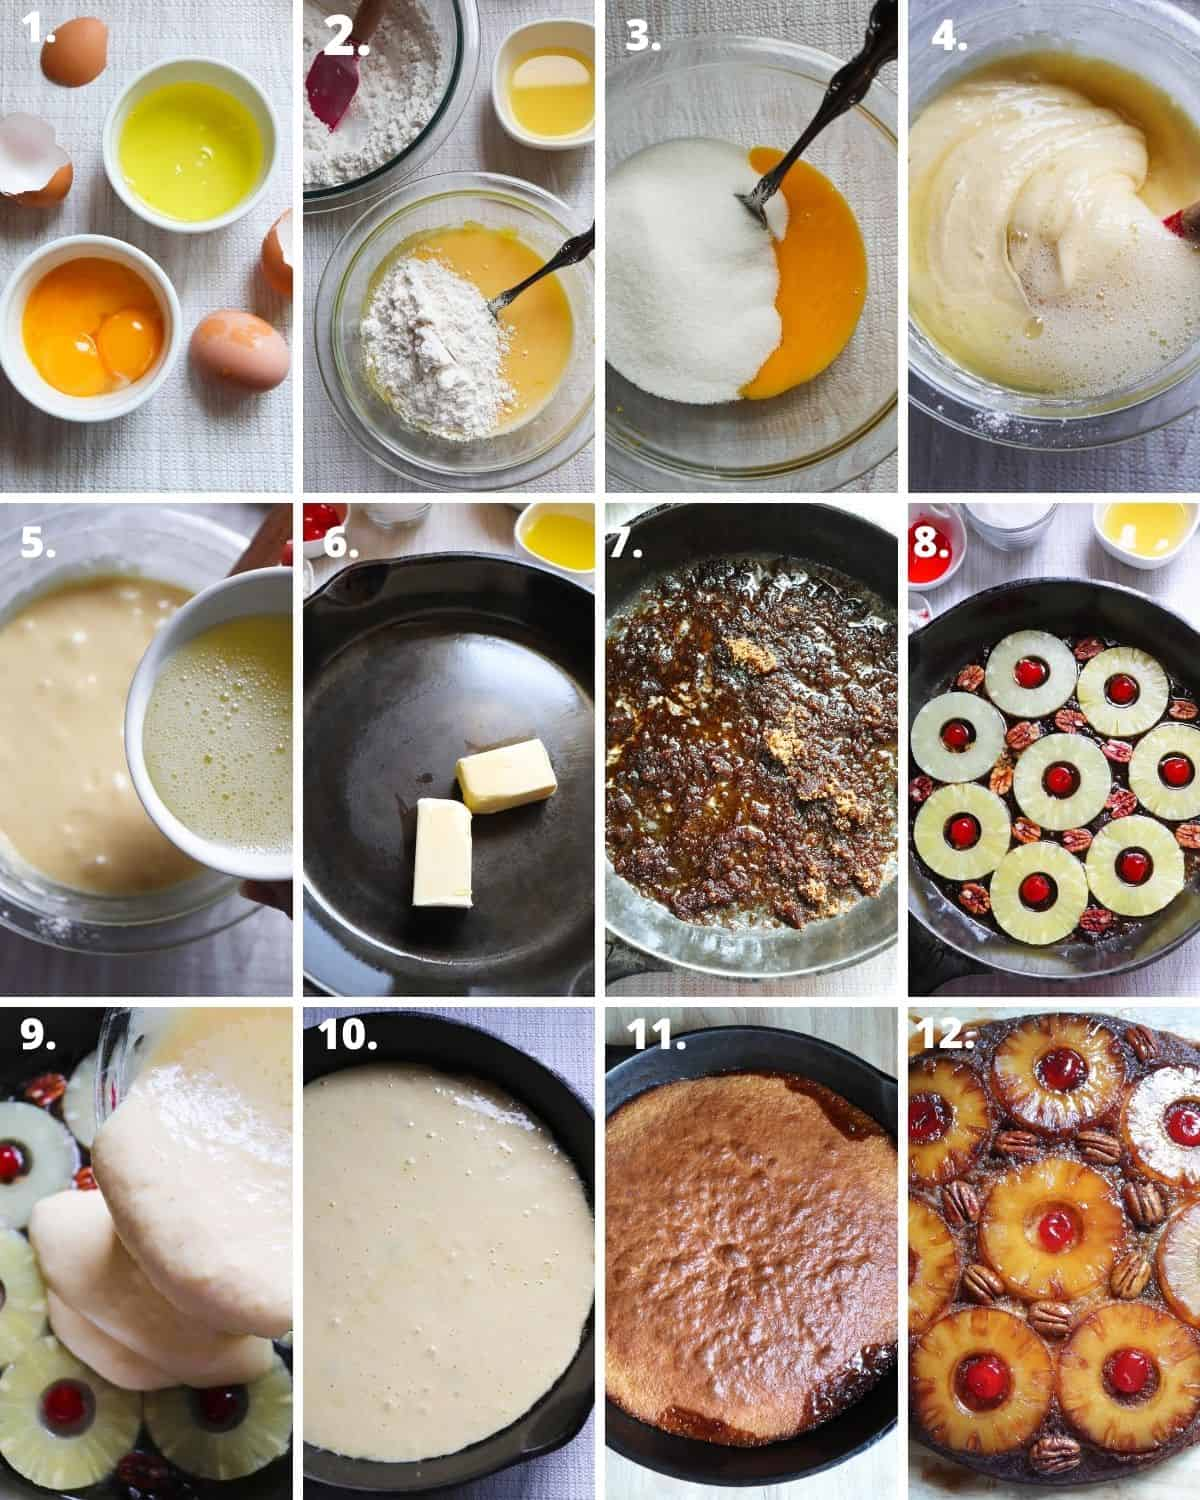 12 steps to make a delicious pineapple upside down cake